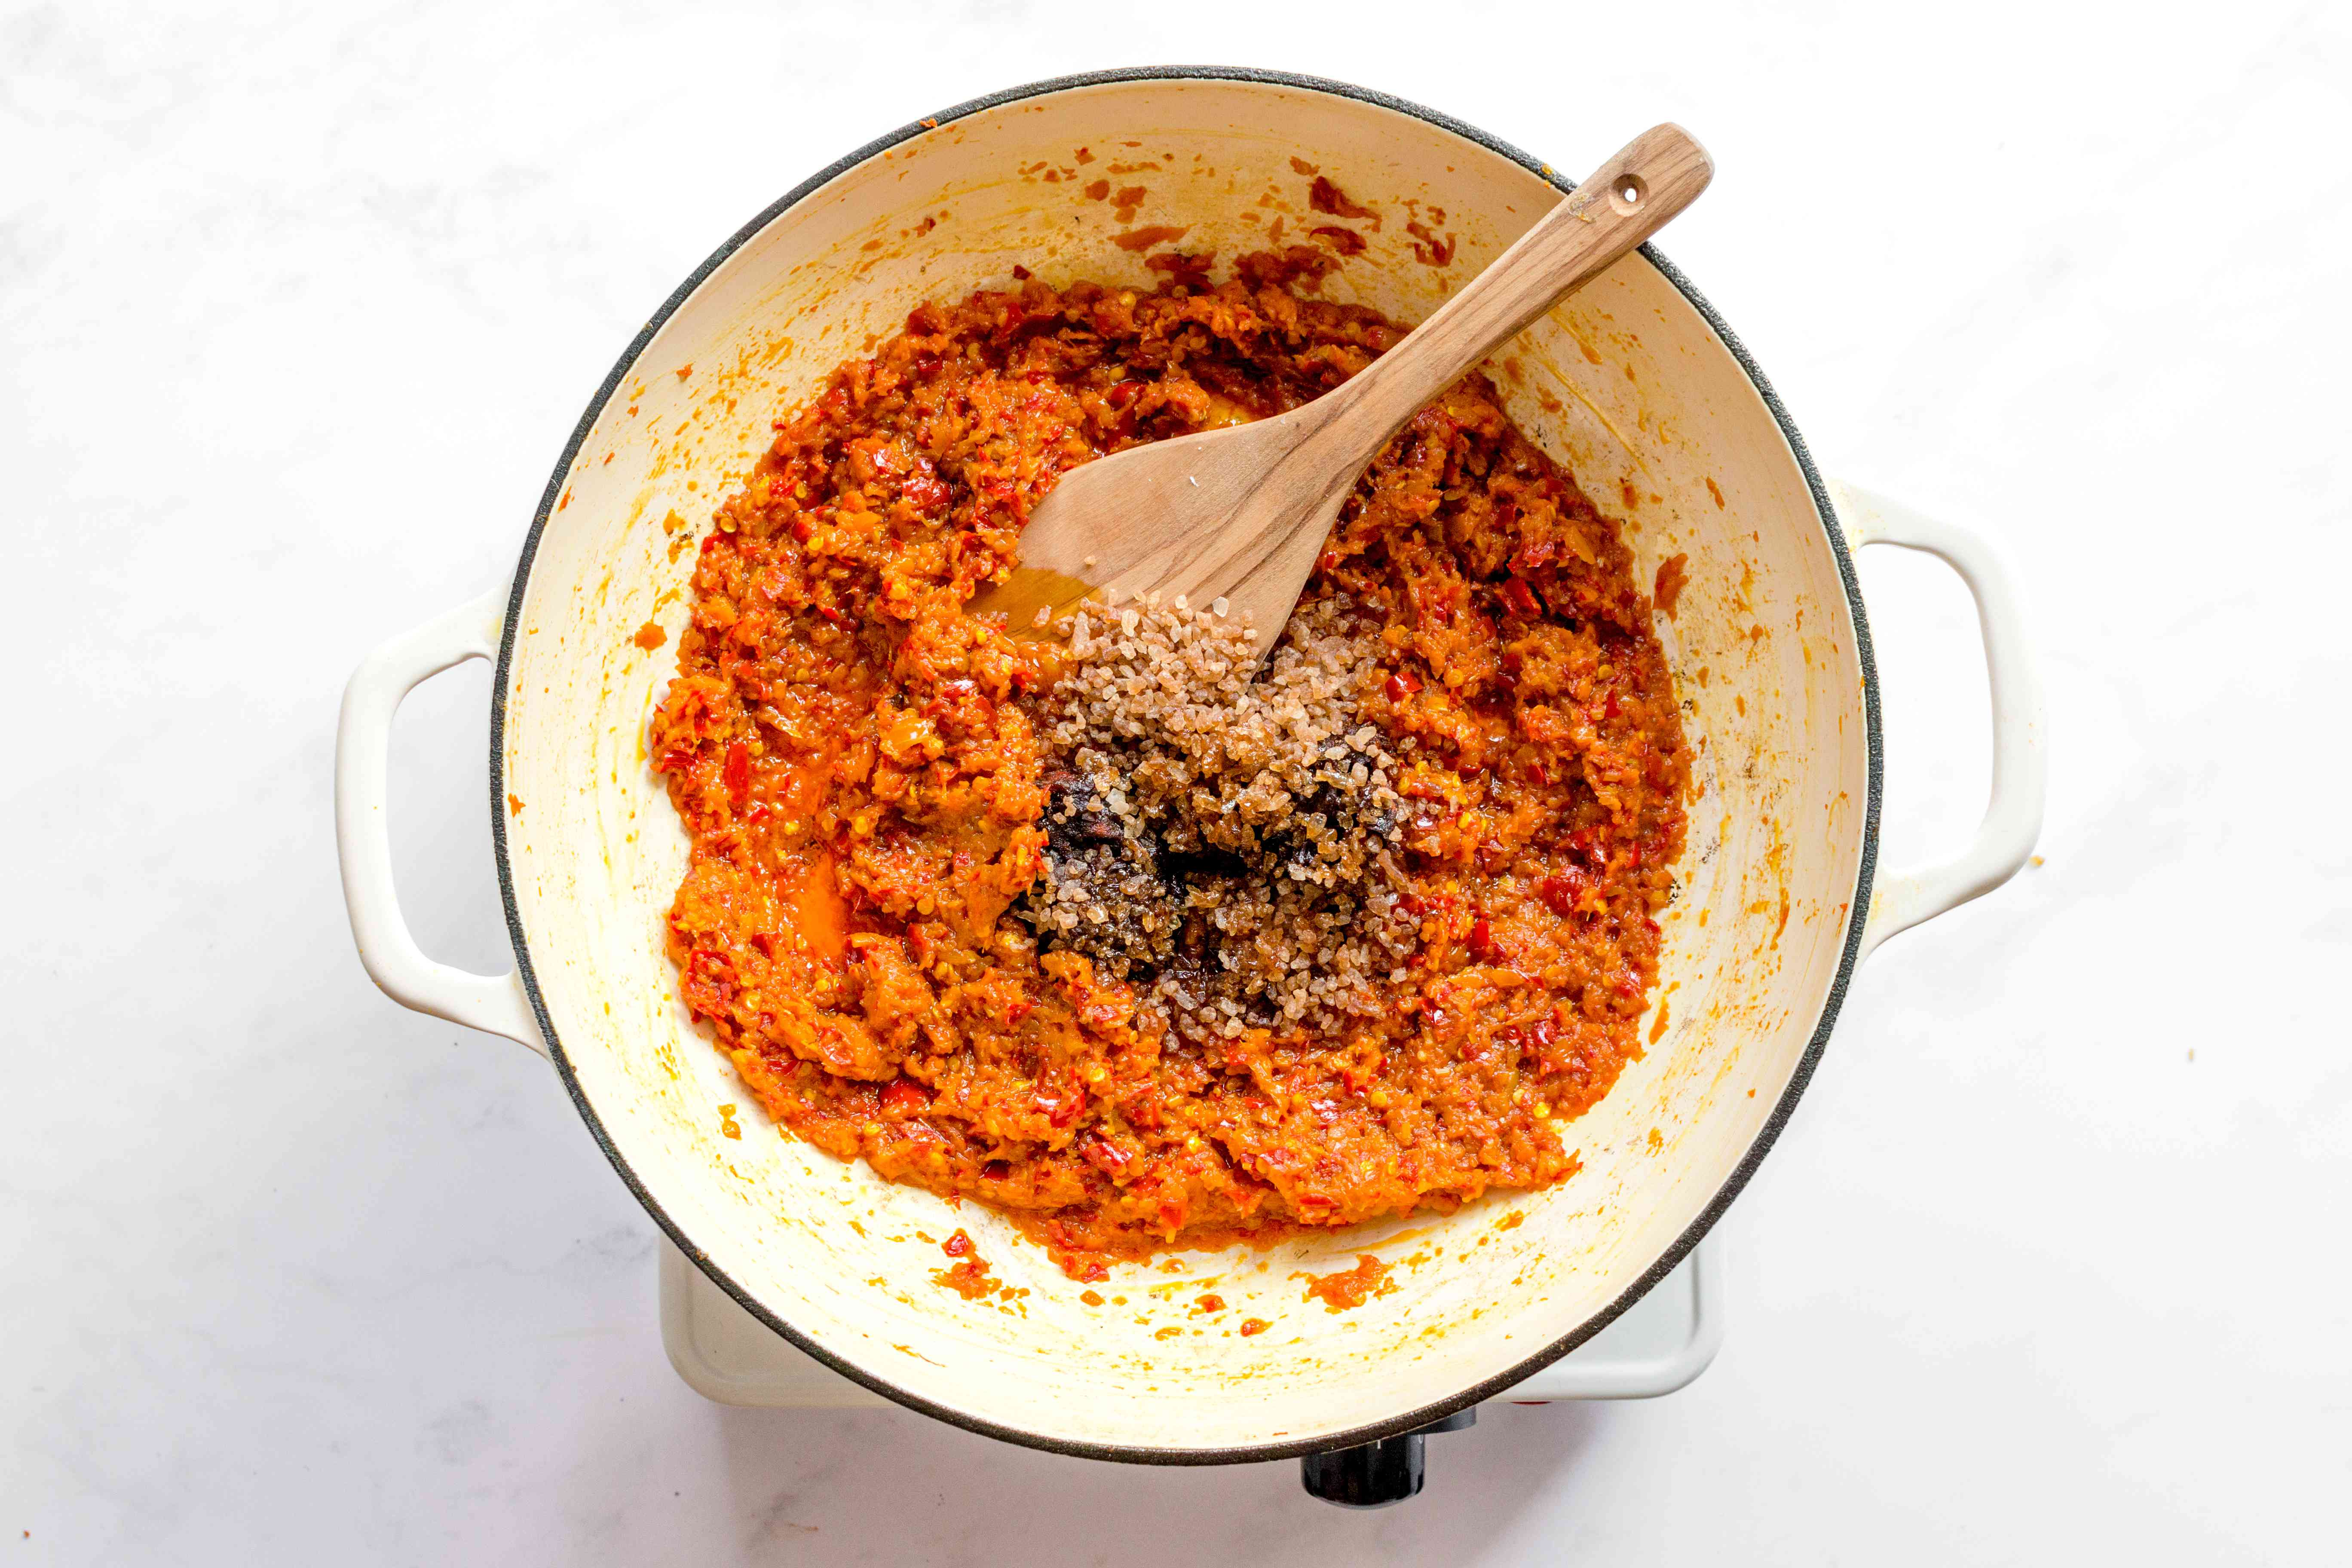 add the fish sauce, palm sugar, and tamarind paste to sauce in skillet